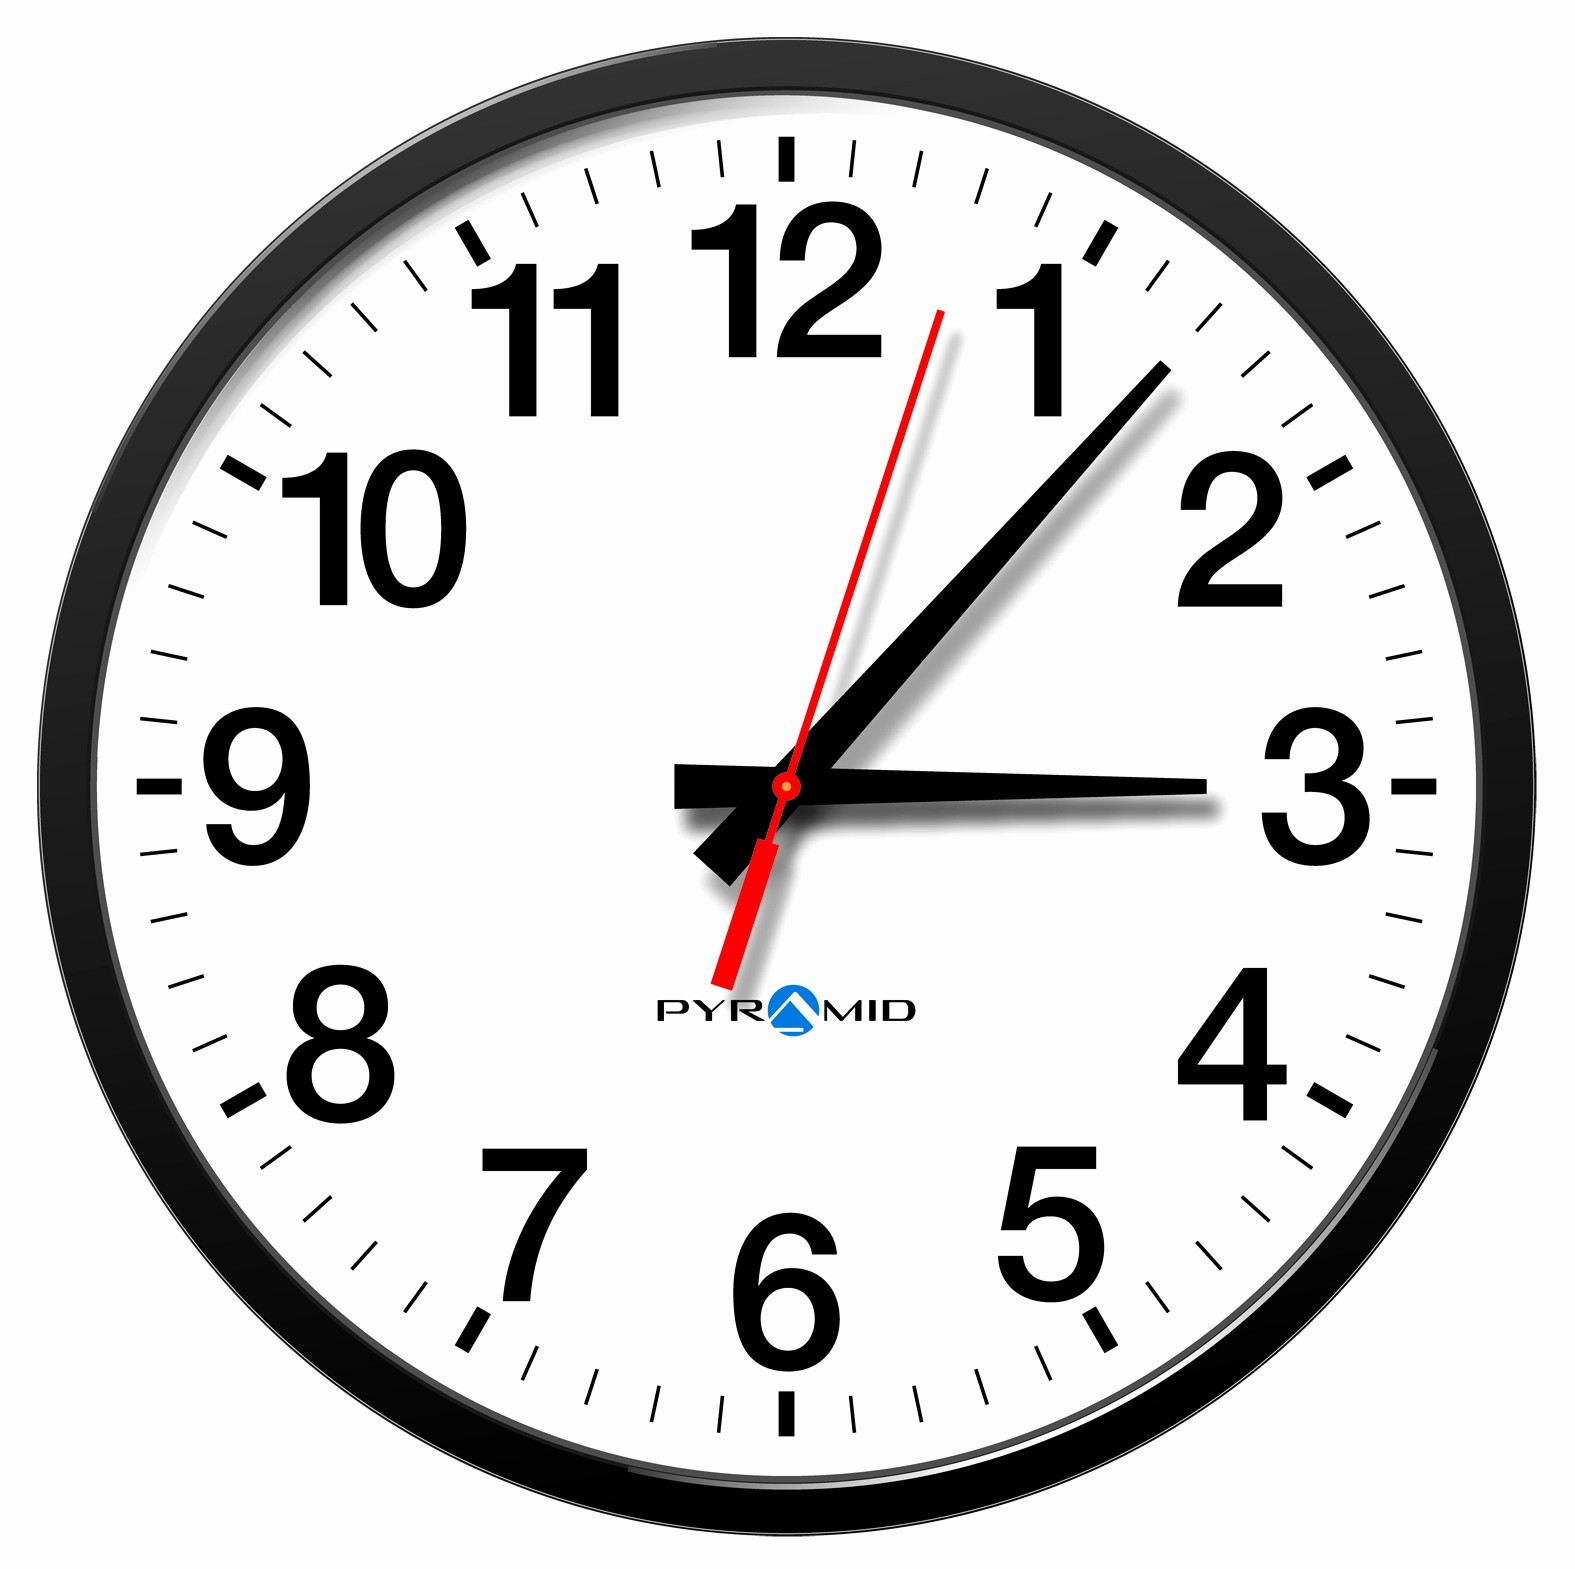 Clock In Clock Out Template Beautiful Wireless Clocks – associated Time & Parking Controls